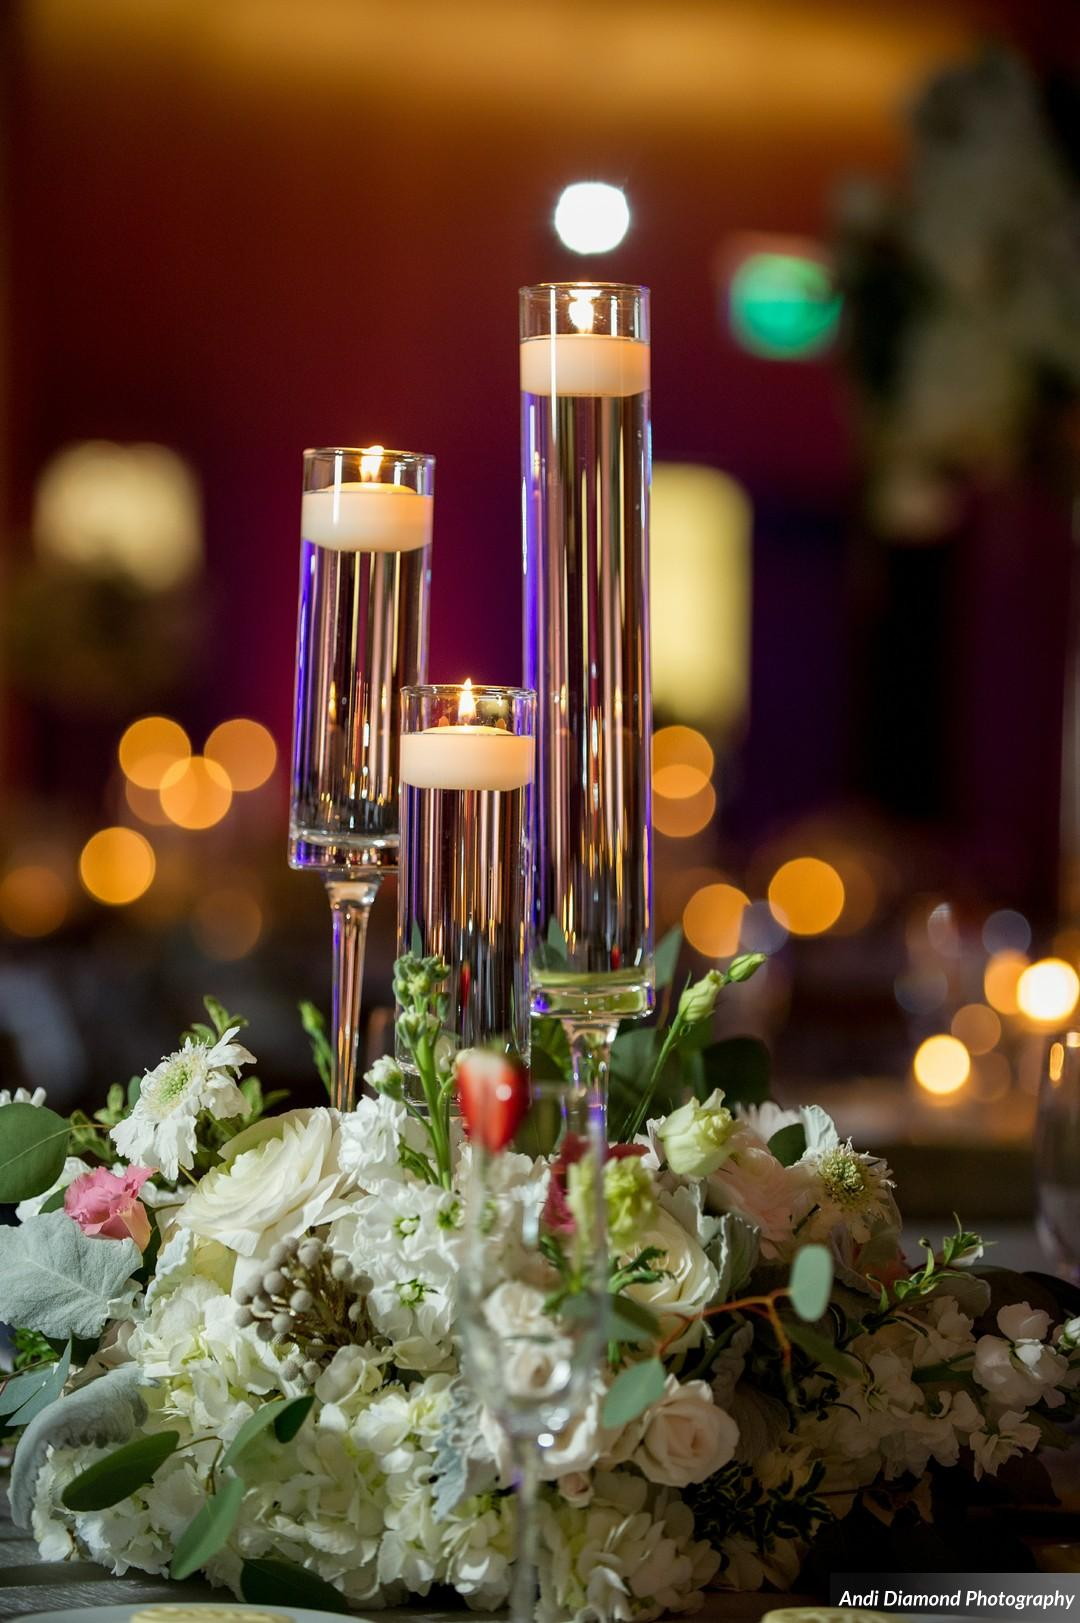 Floral arrangements included plenty of greenery for a natural element, and an abundance of candlelight for a romantic effect.